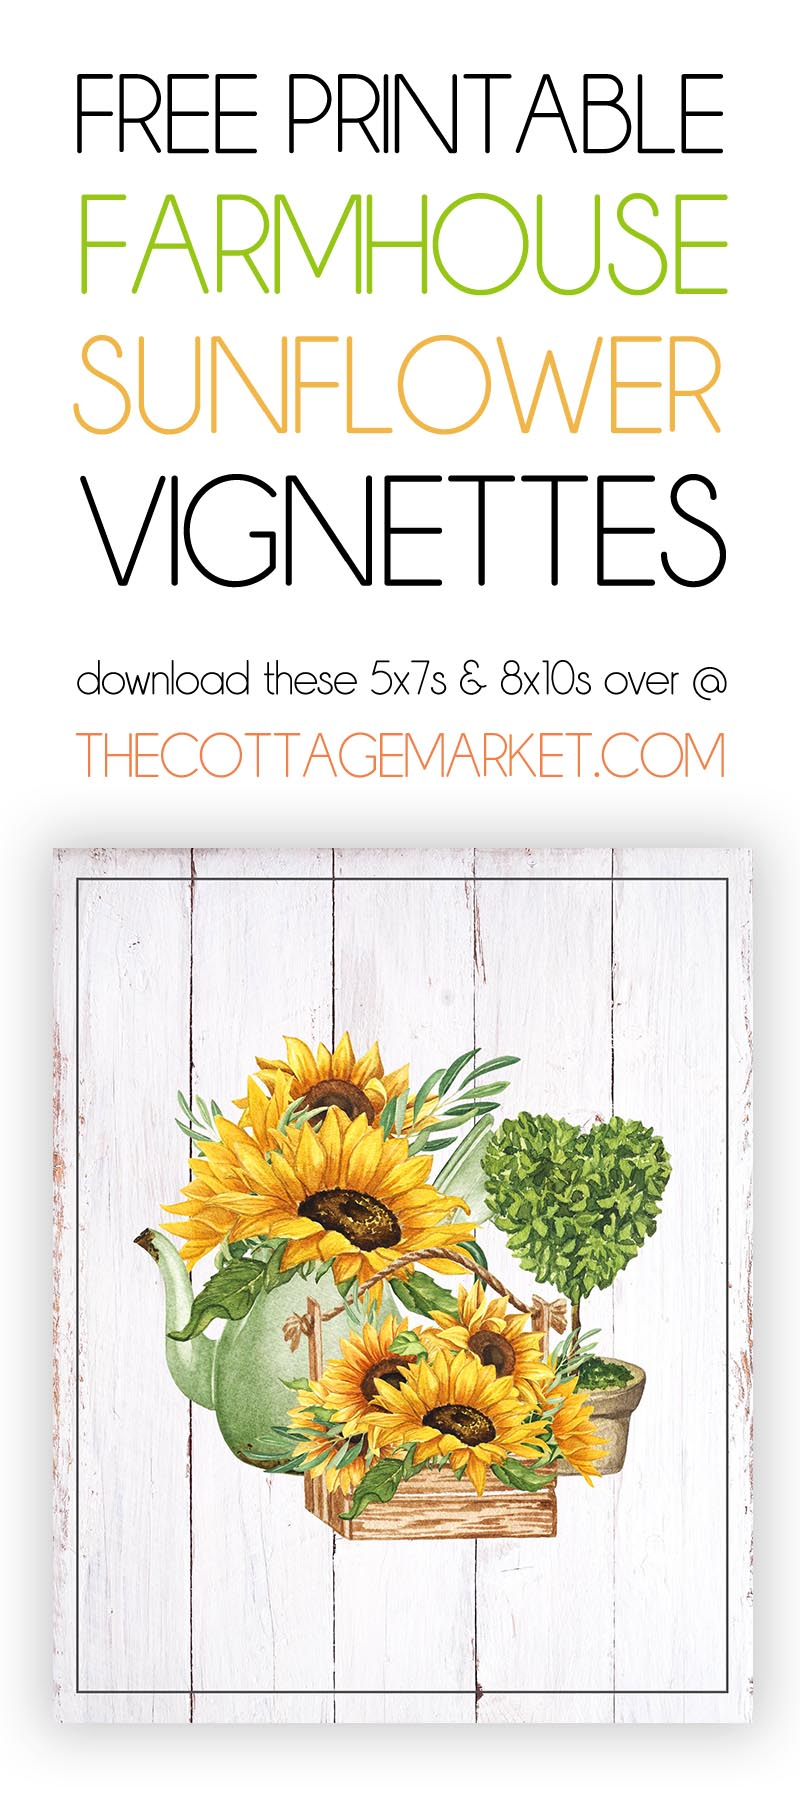 These Free Printable Fresh Farmhouse Sunflower Vignettes are going to add a touch of Charm to your Home for sure.